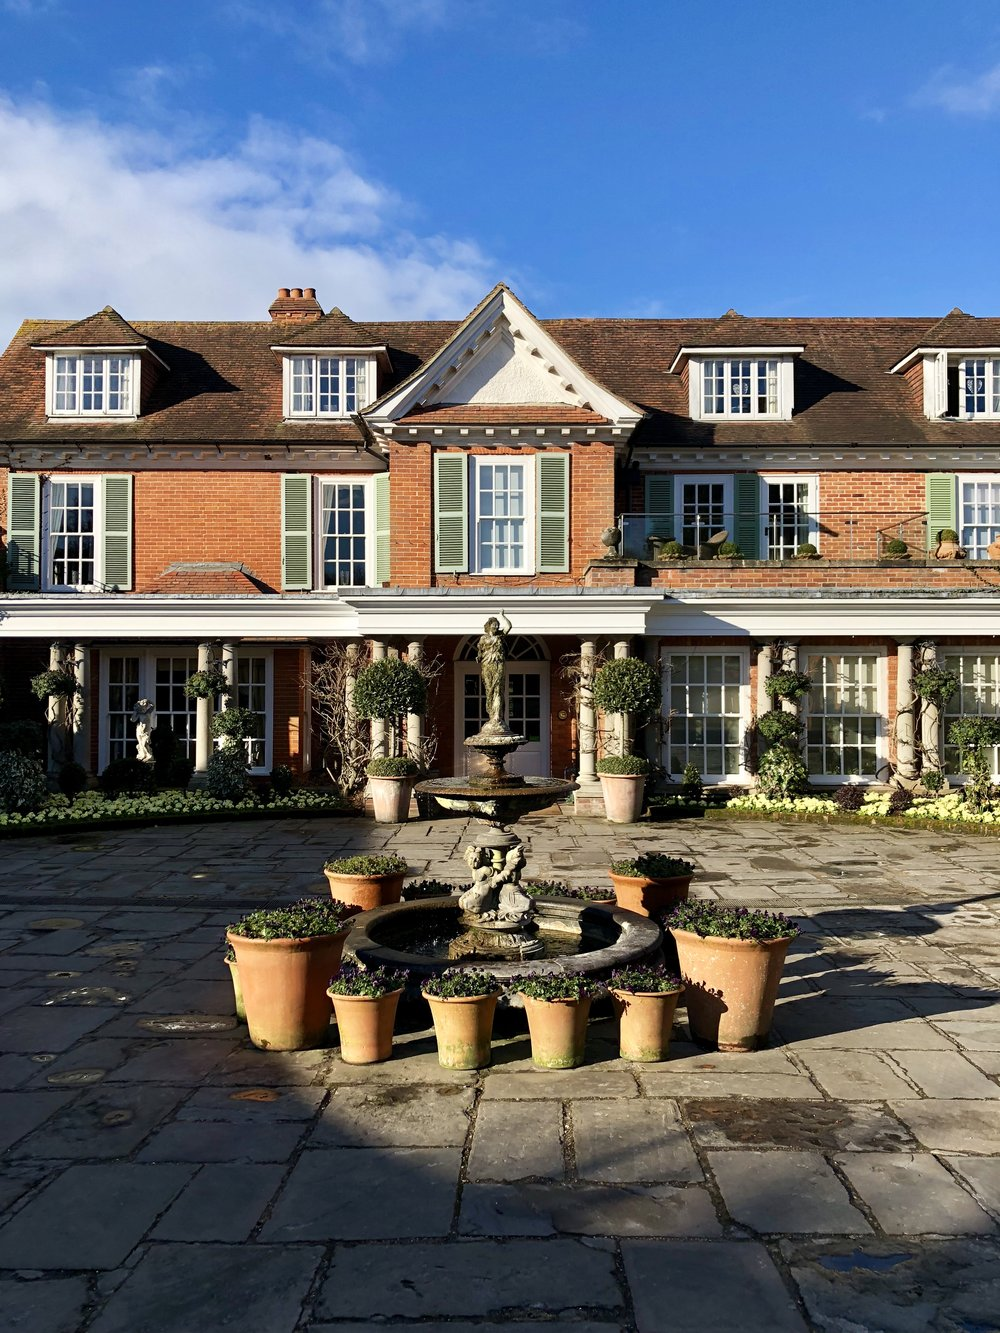 chewton_glen_hotel_hampshire.jpg